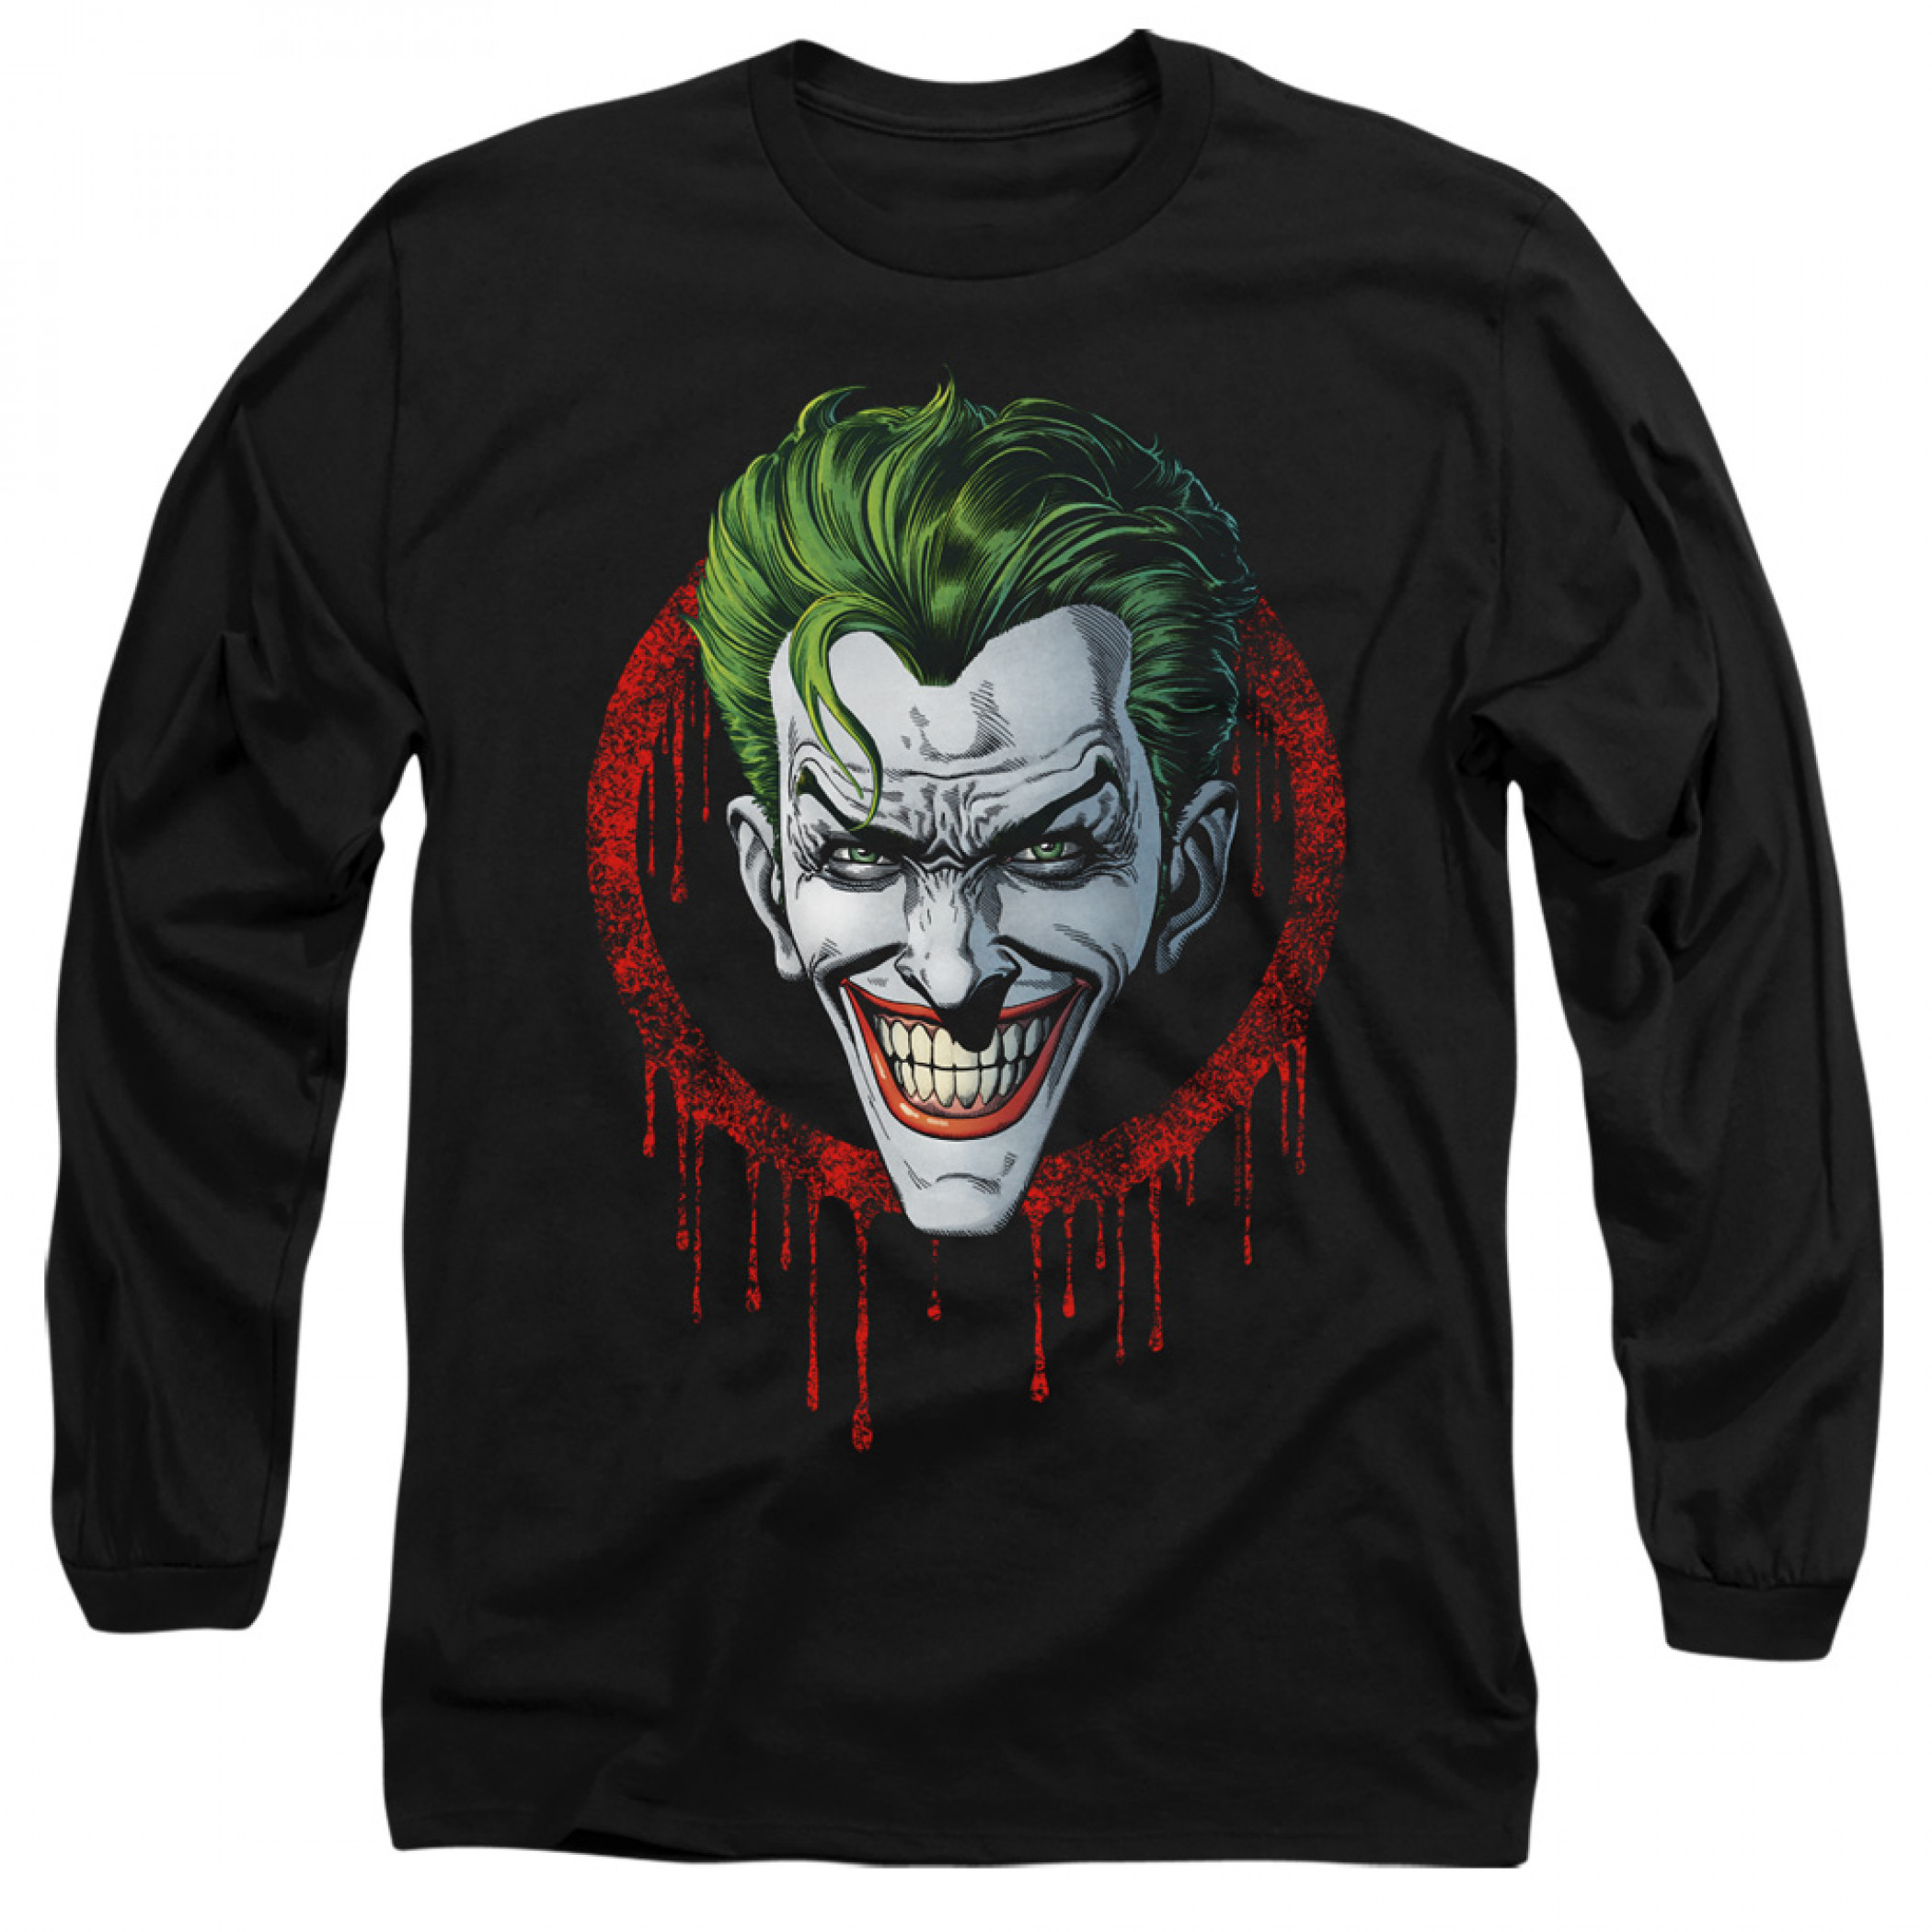 The Joker Drips Long Sleeve Shirt